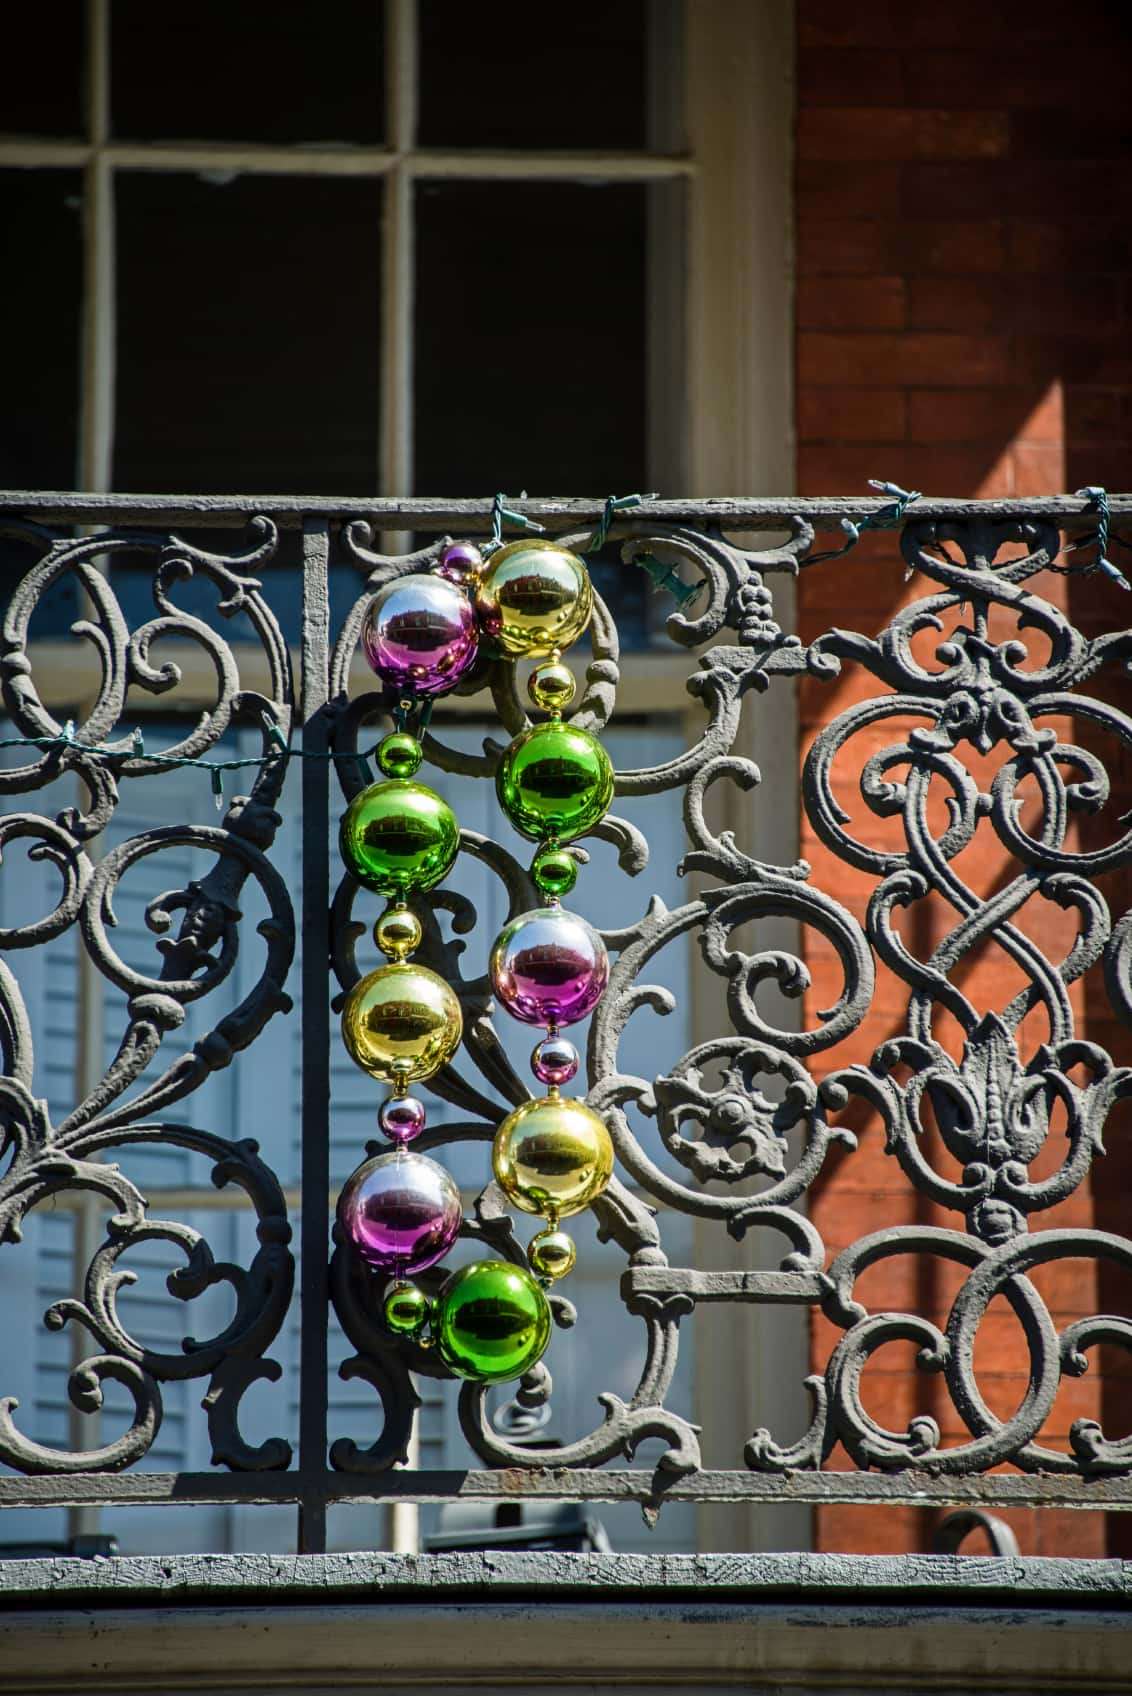 Wrought Iron Balconies of New Orleans